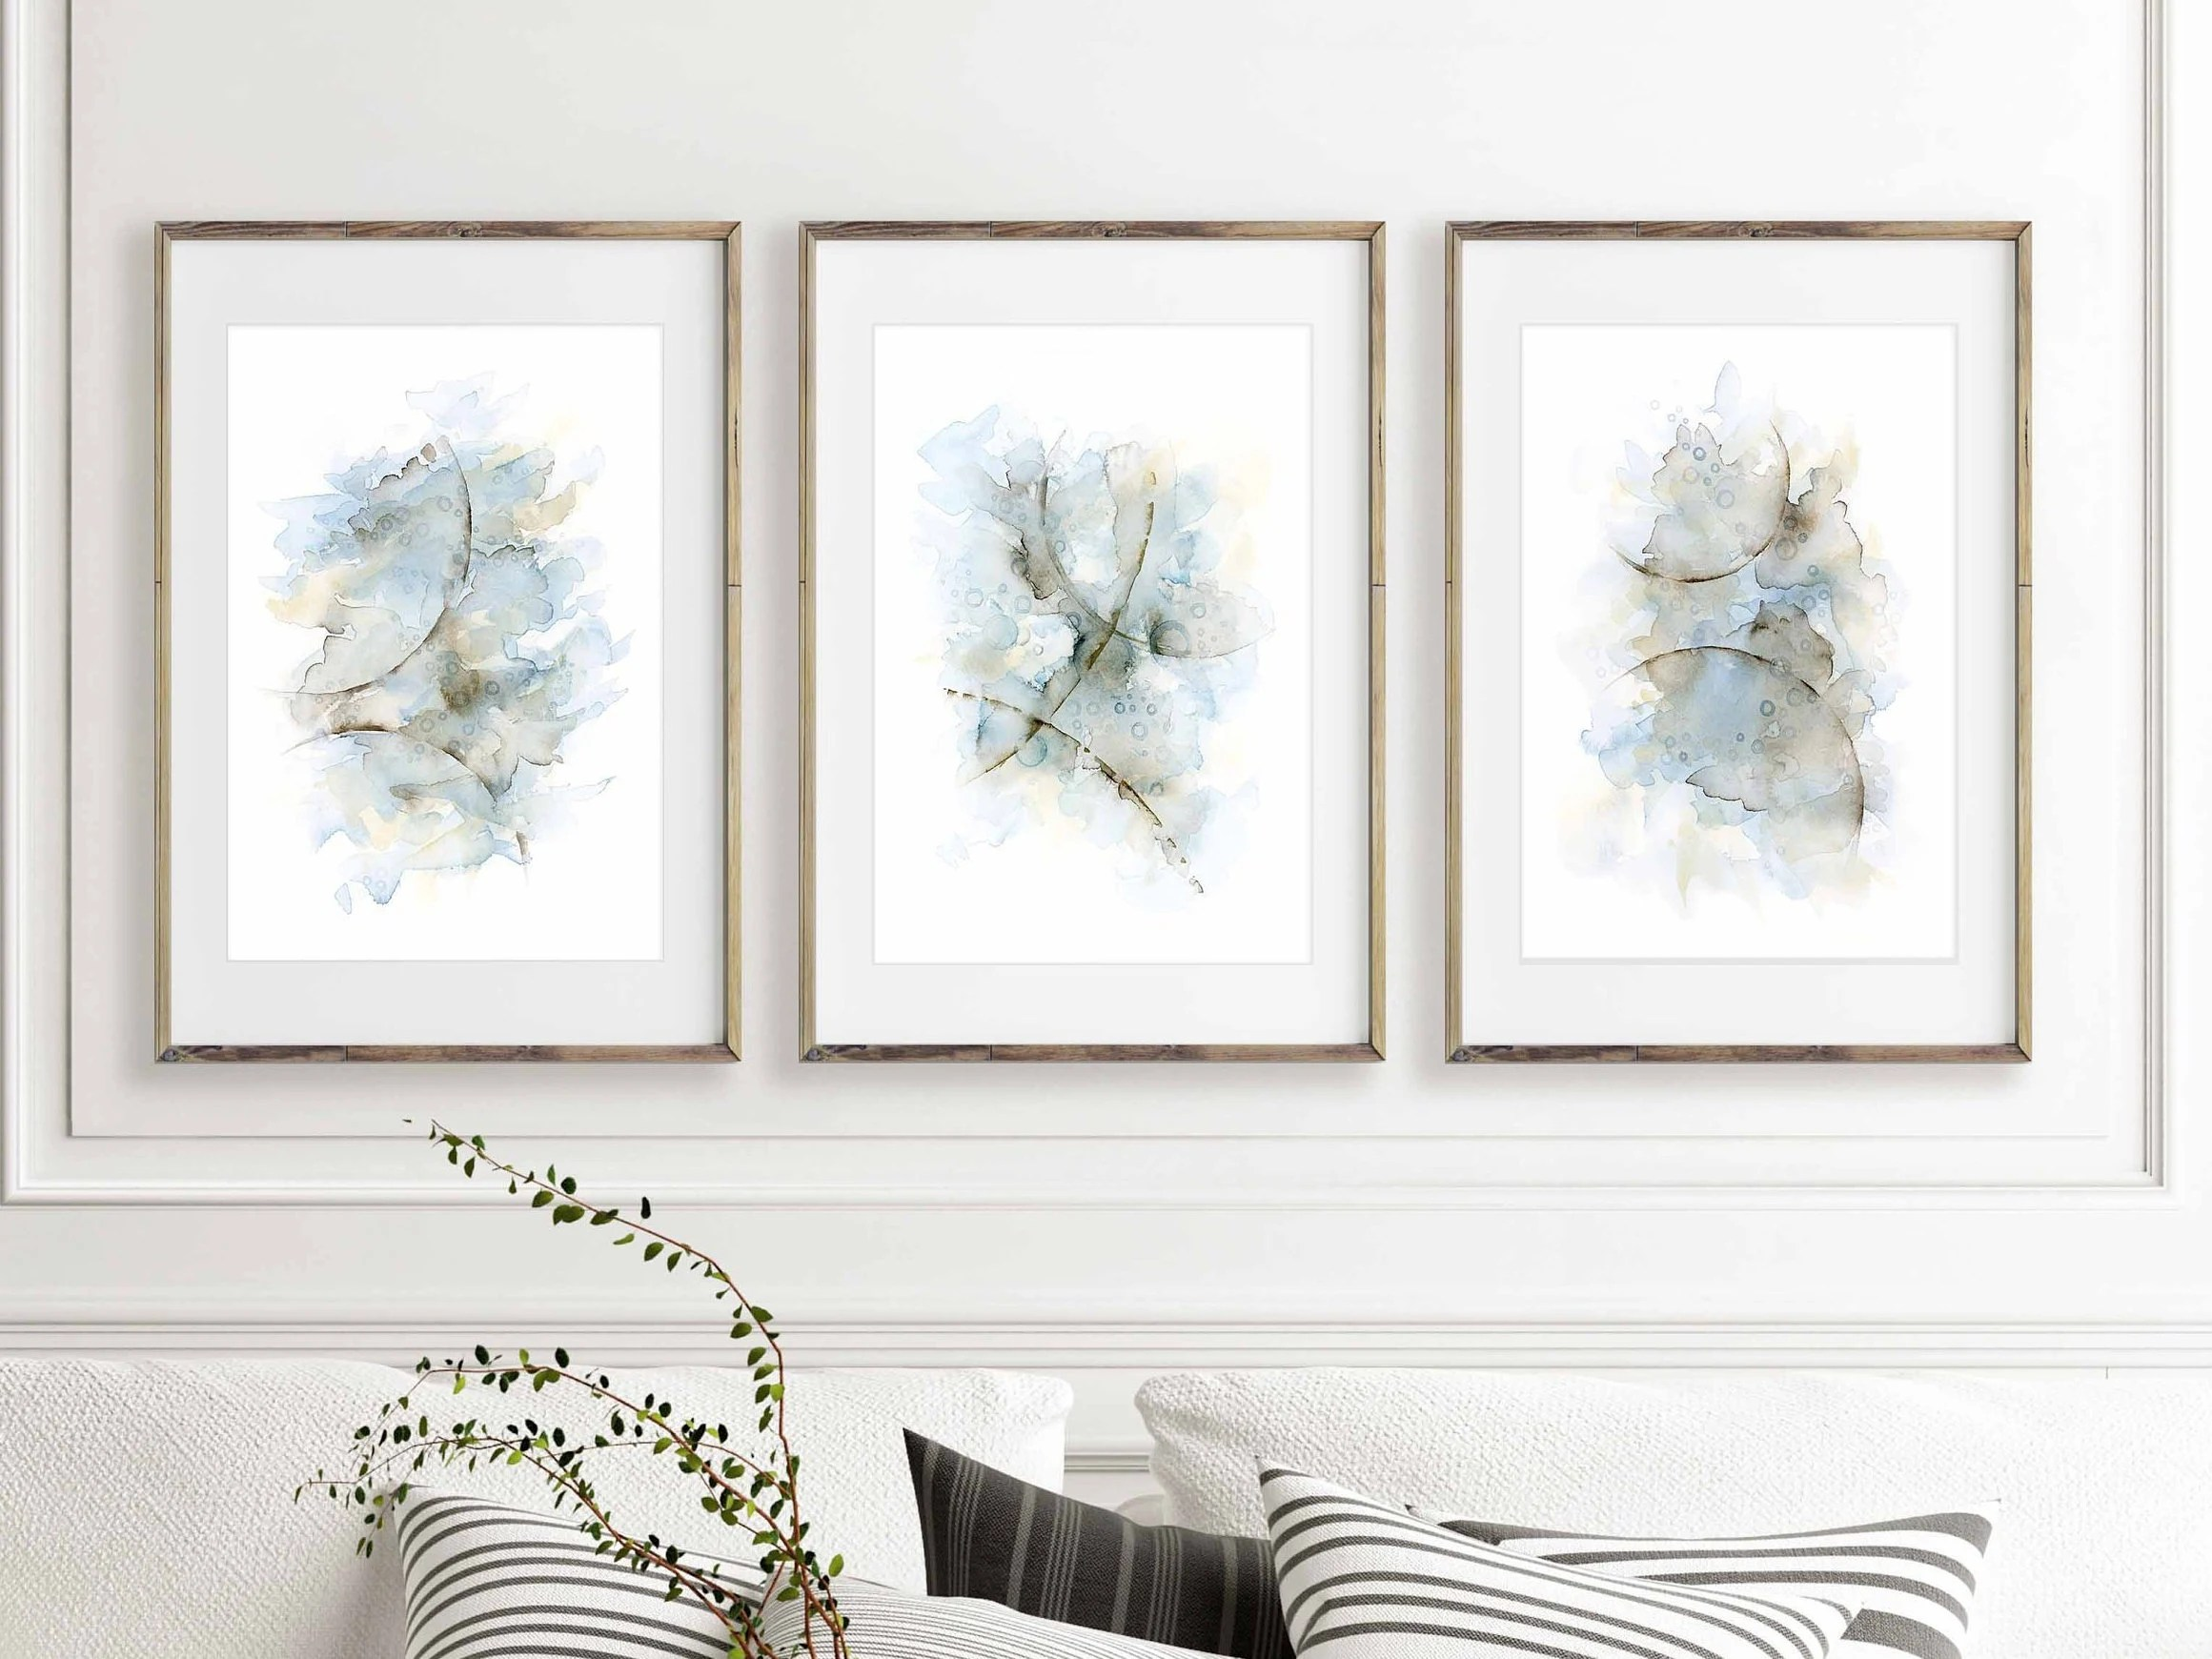 images of living room wall decor gumtree furniture brisbane art set 3 prints abstract watercolor etsy image 0